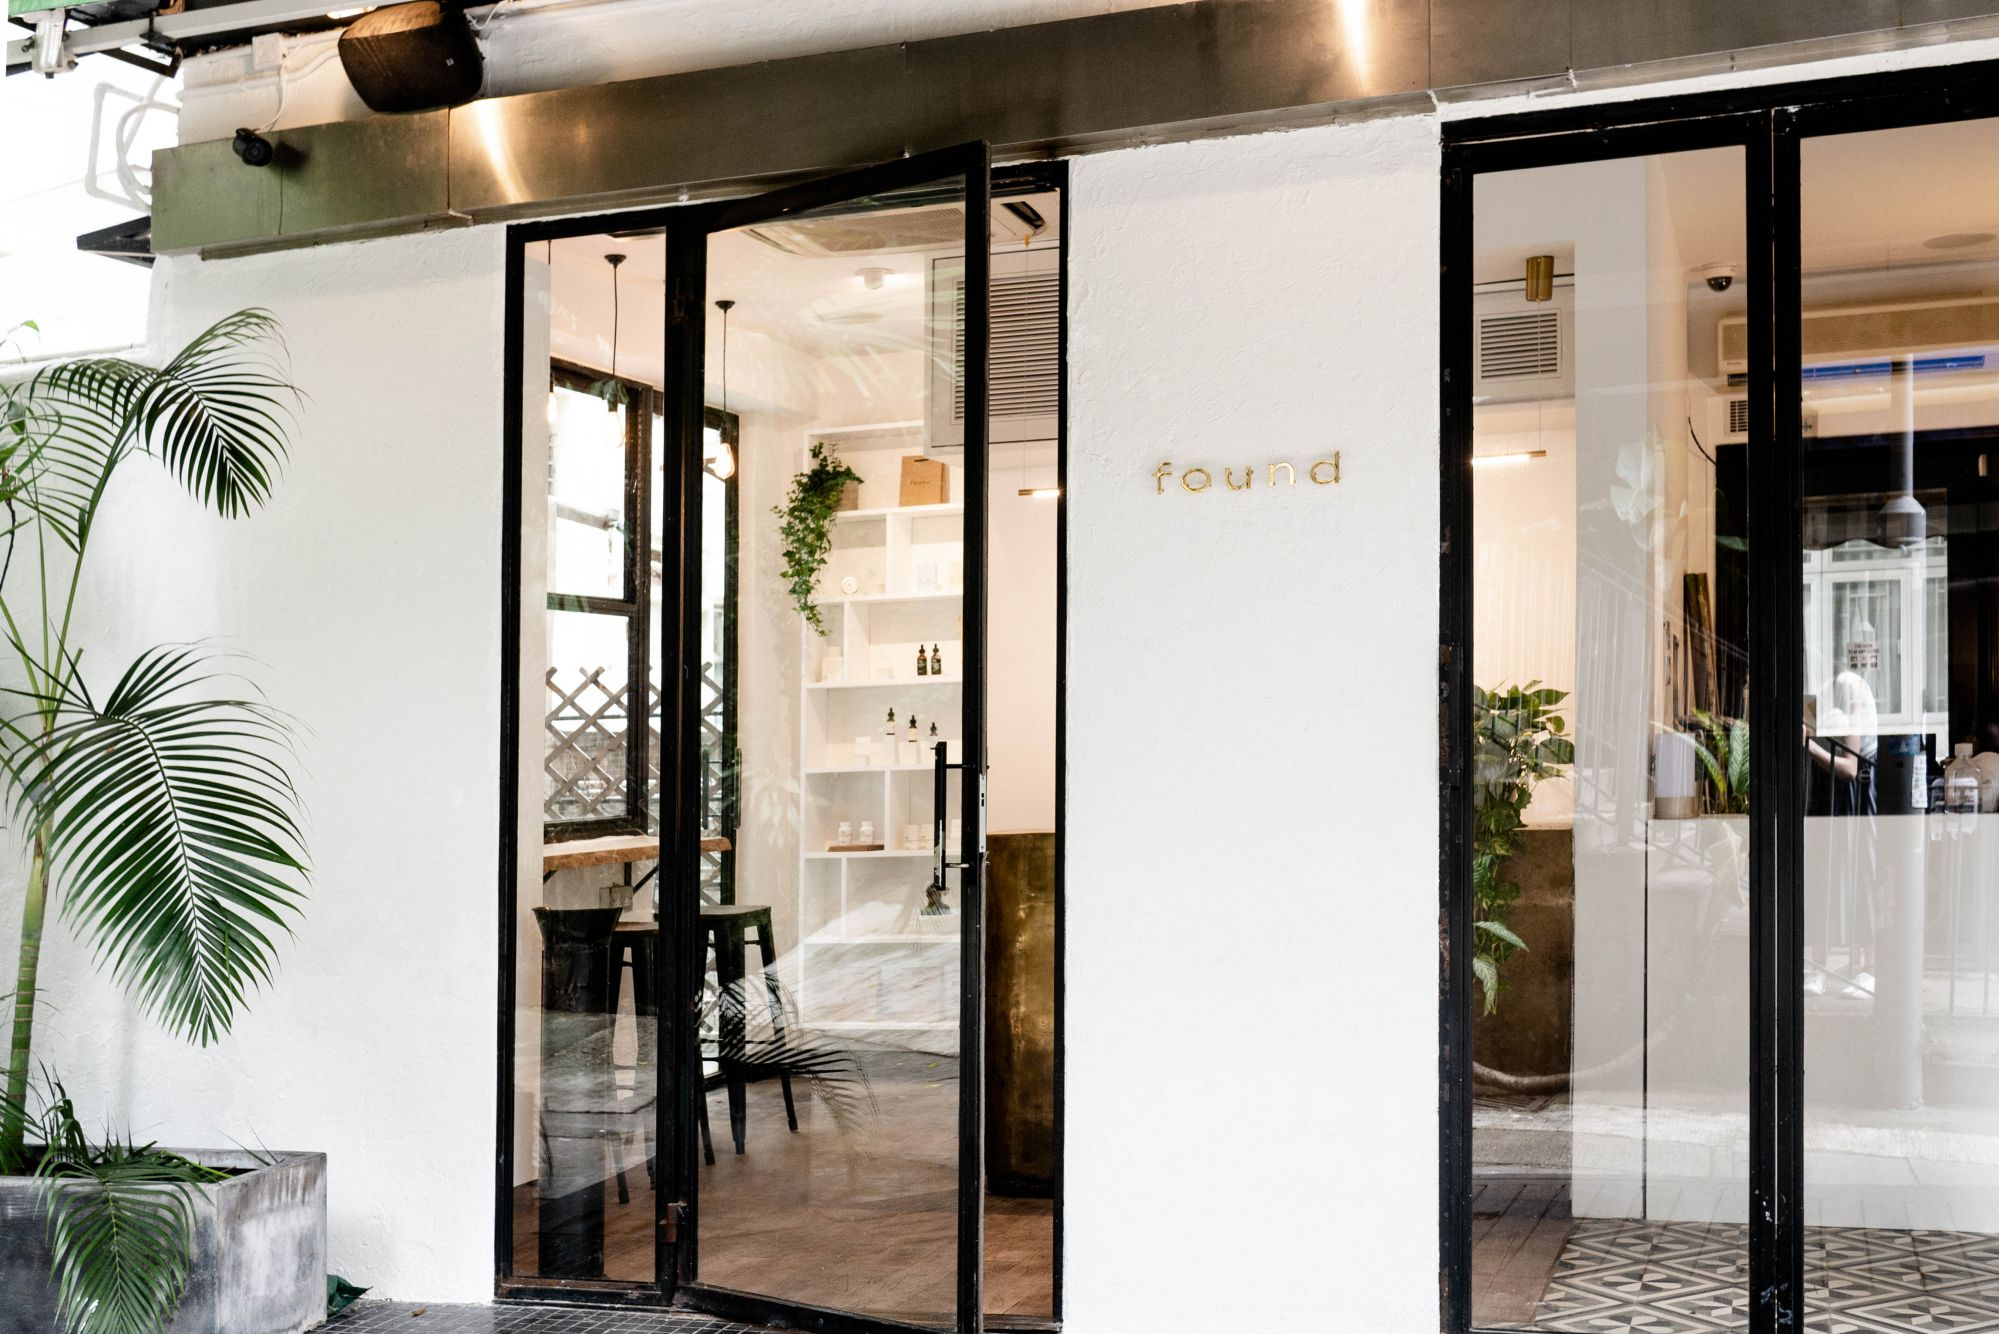 Hong Kong's First Dedicated CBD Cafe and Boutique Opens in Sheung Wan